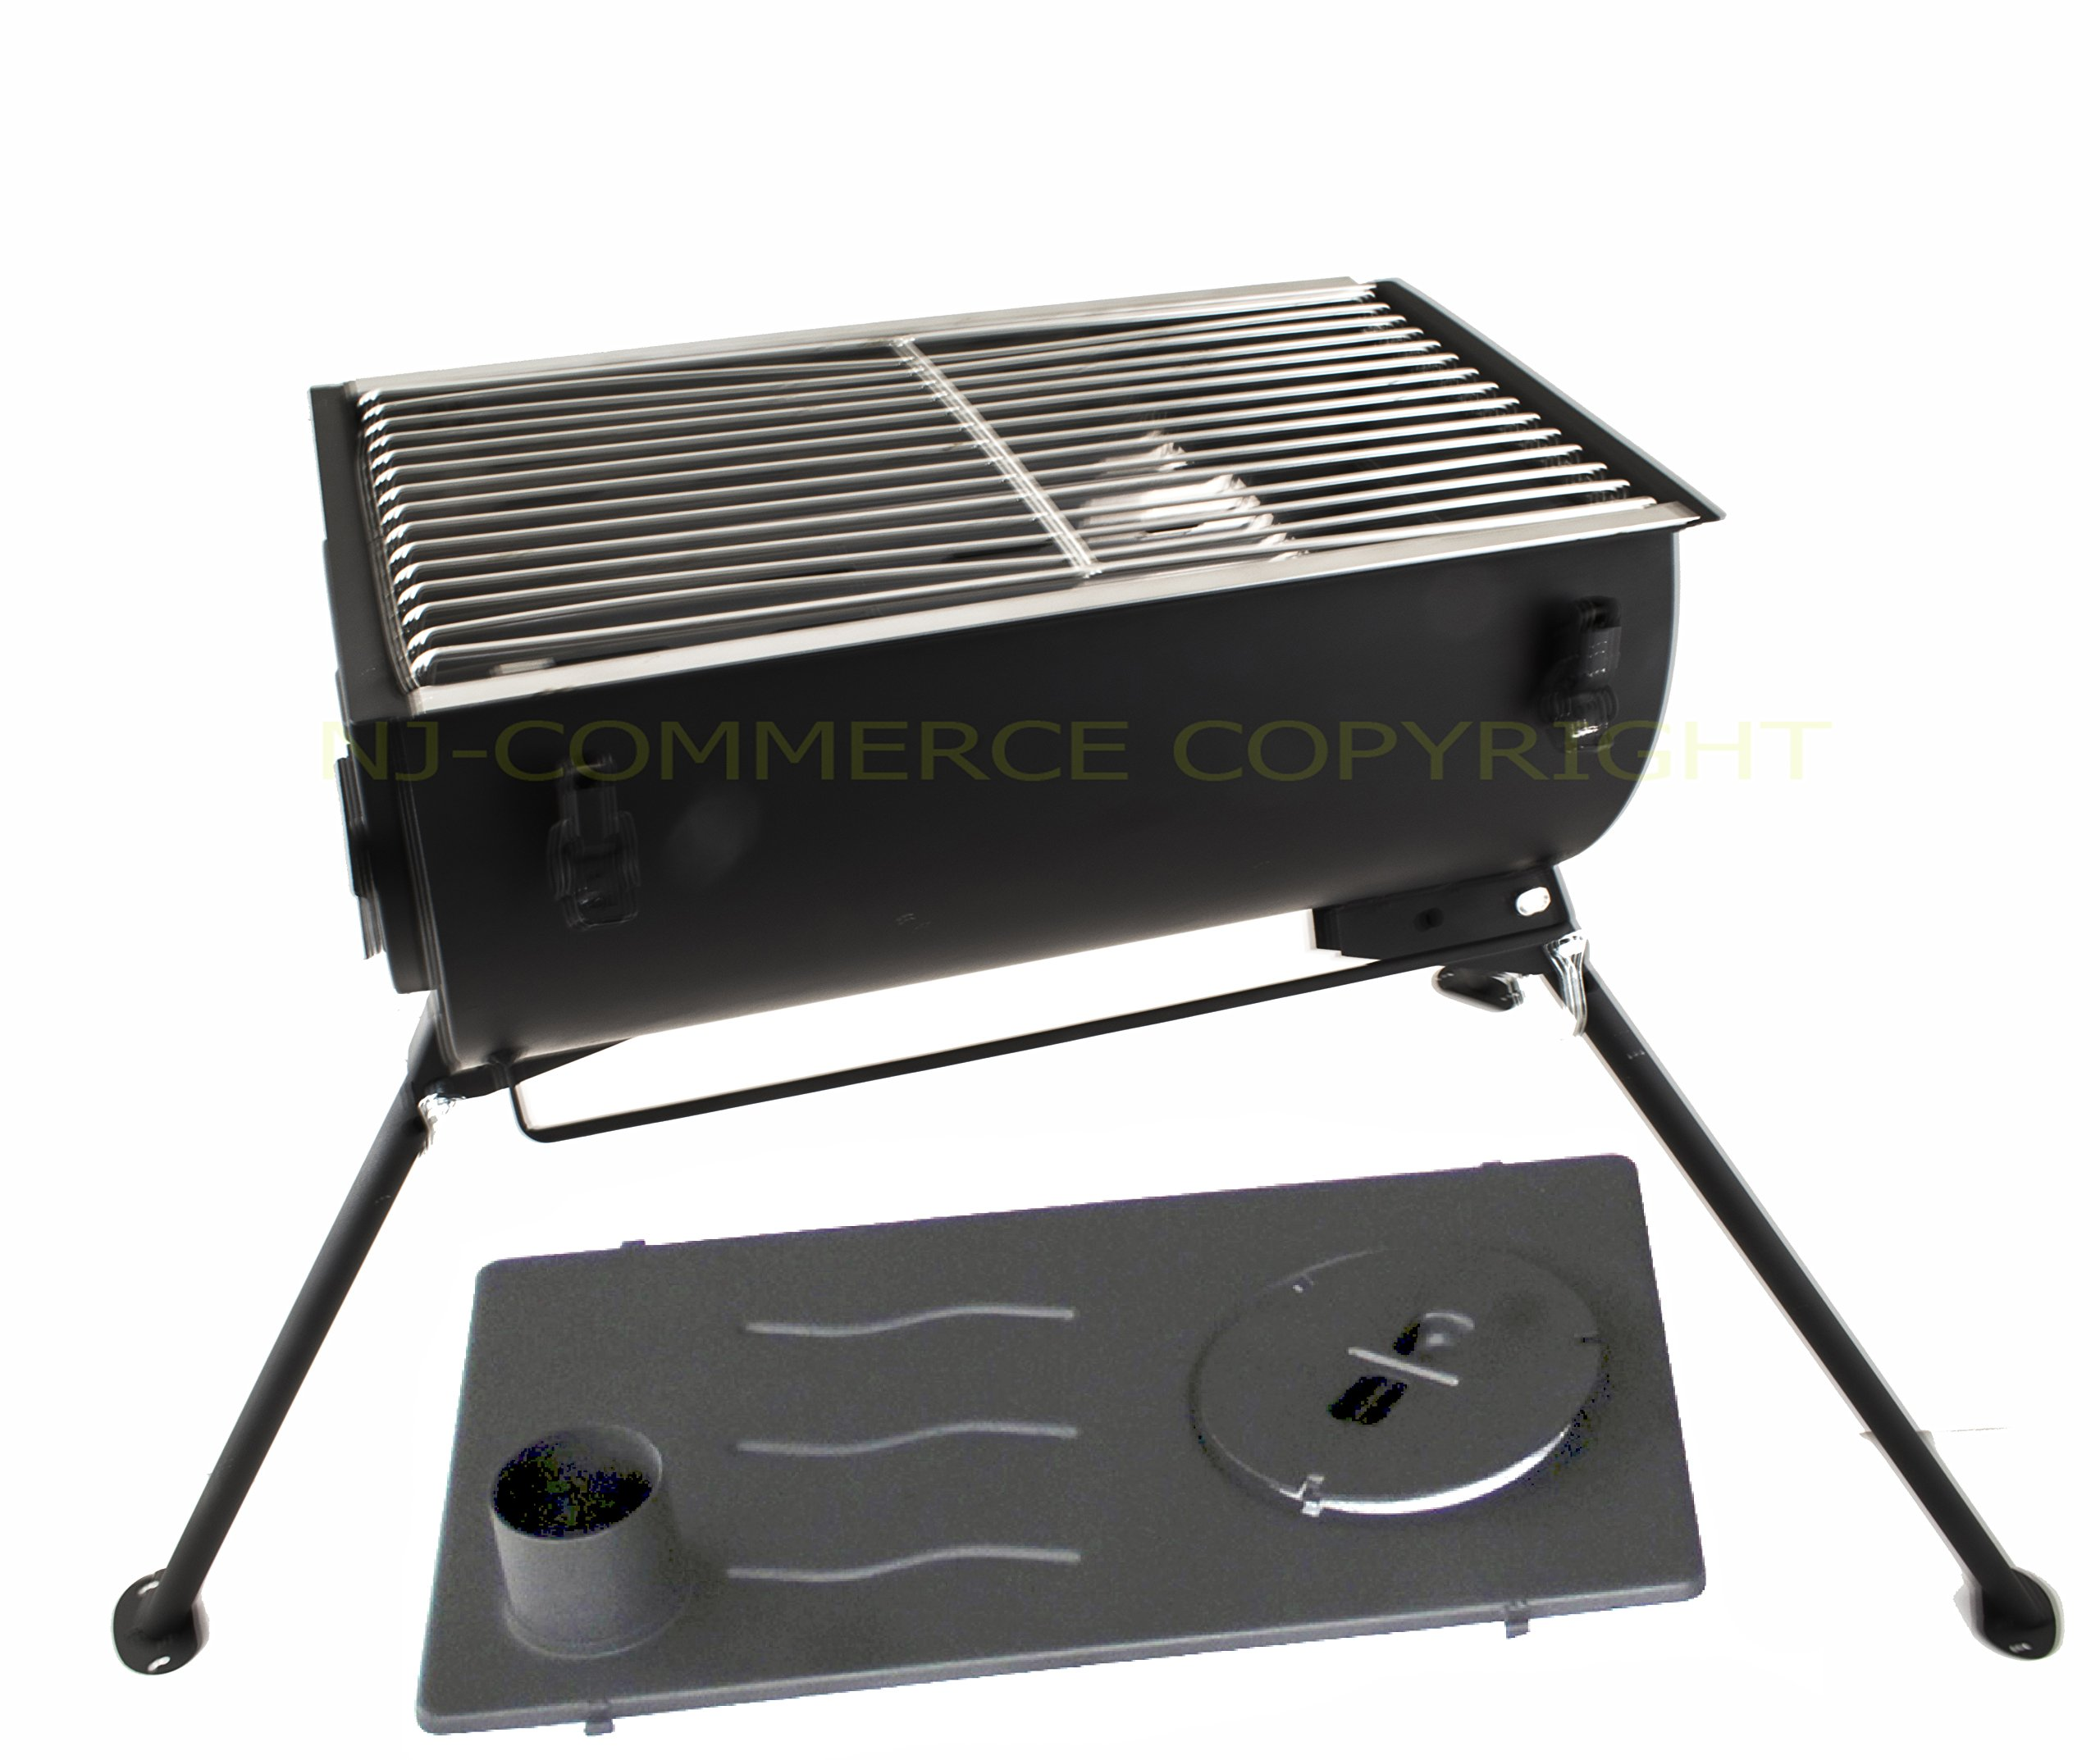 NJ Comfort Wood Burning Stove Grill BBQ Camping Cooker + 3L Water Heater 8